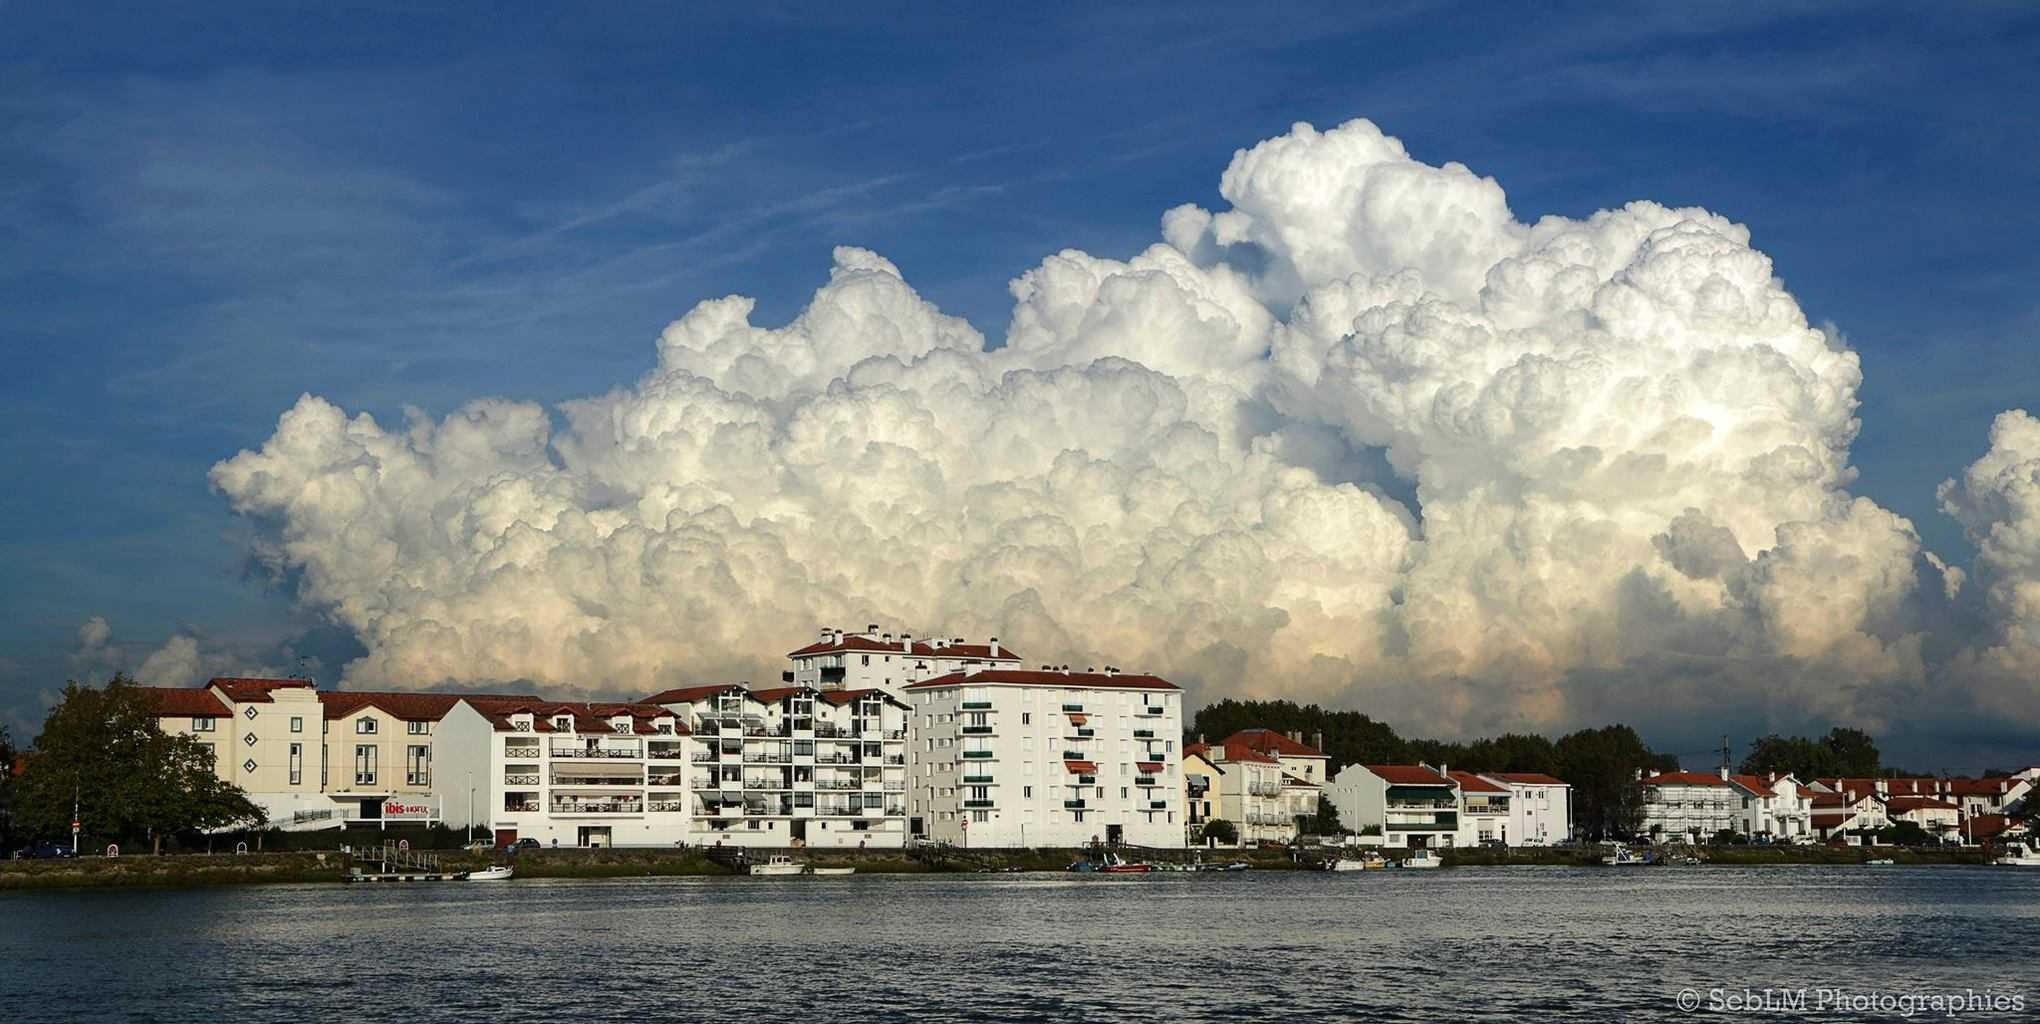 Stormy bubbling seen in Bayonne (French Basque Country), 21 September 2014 / Seblm Photographies.